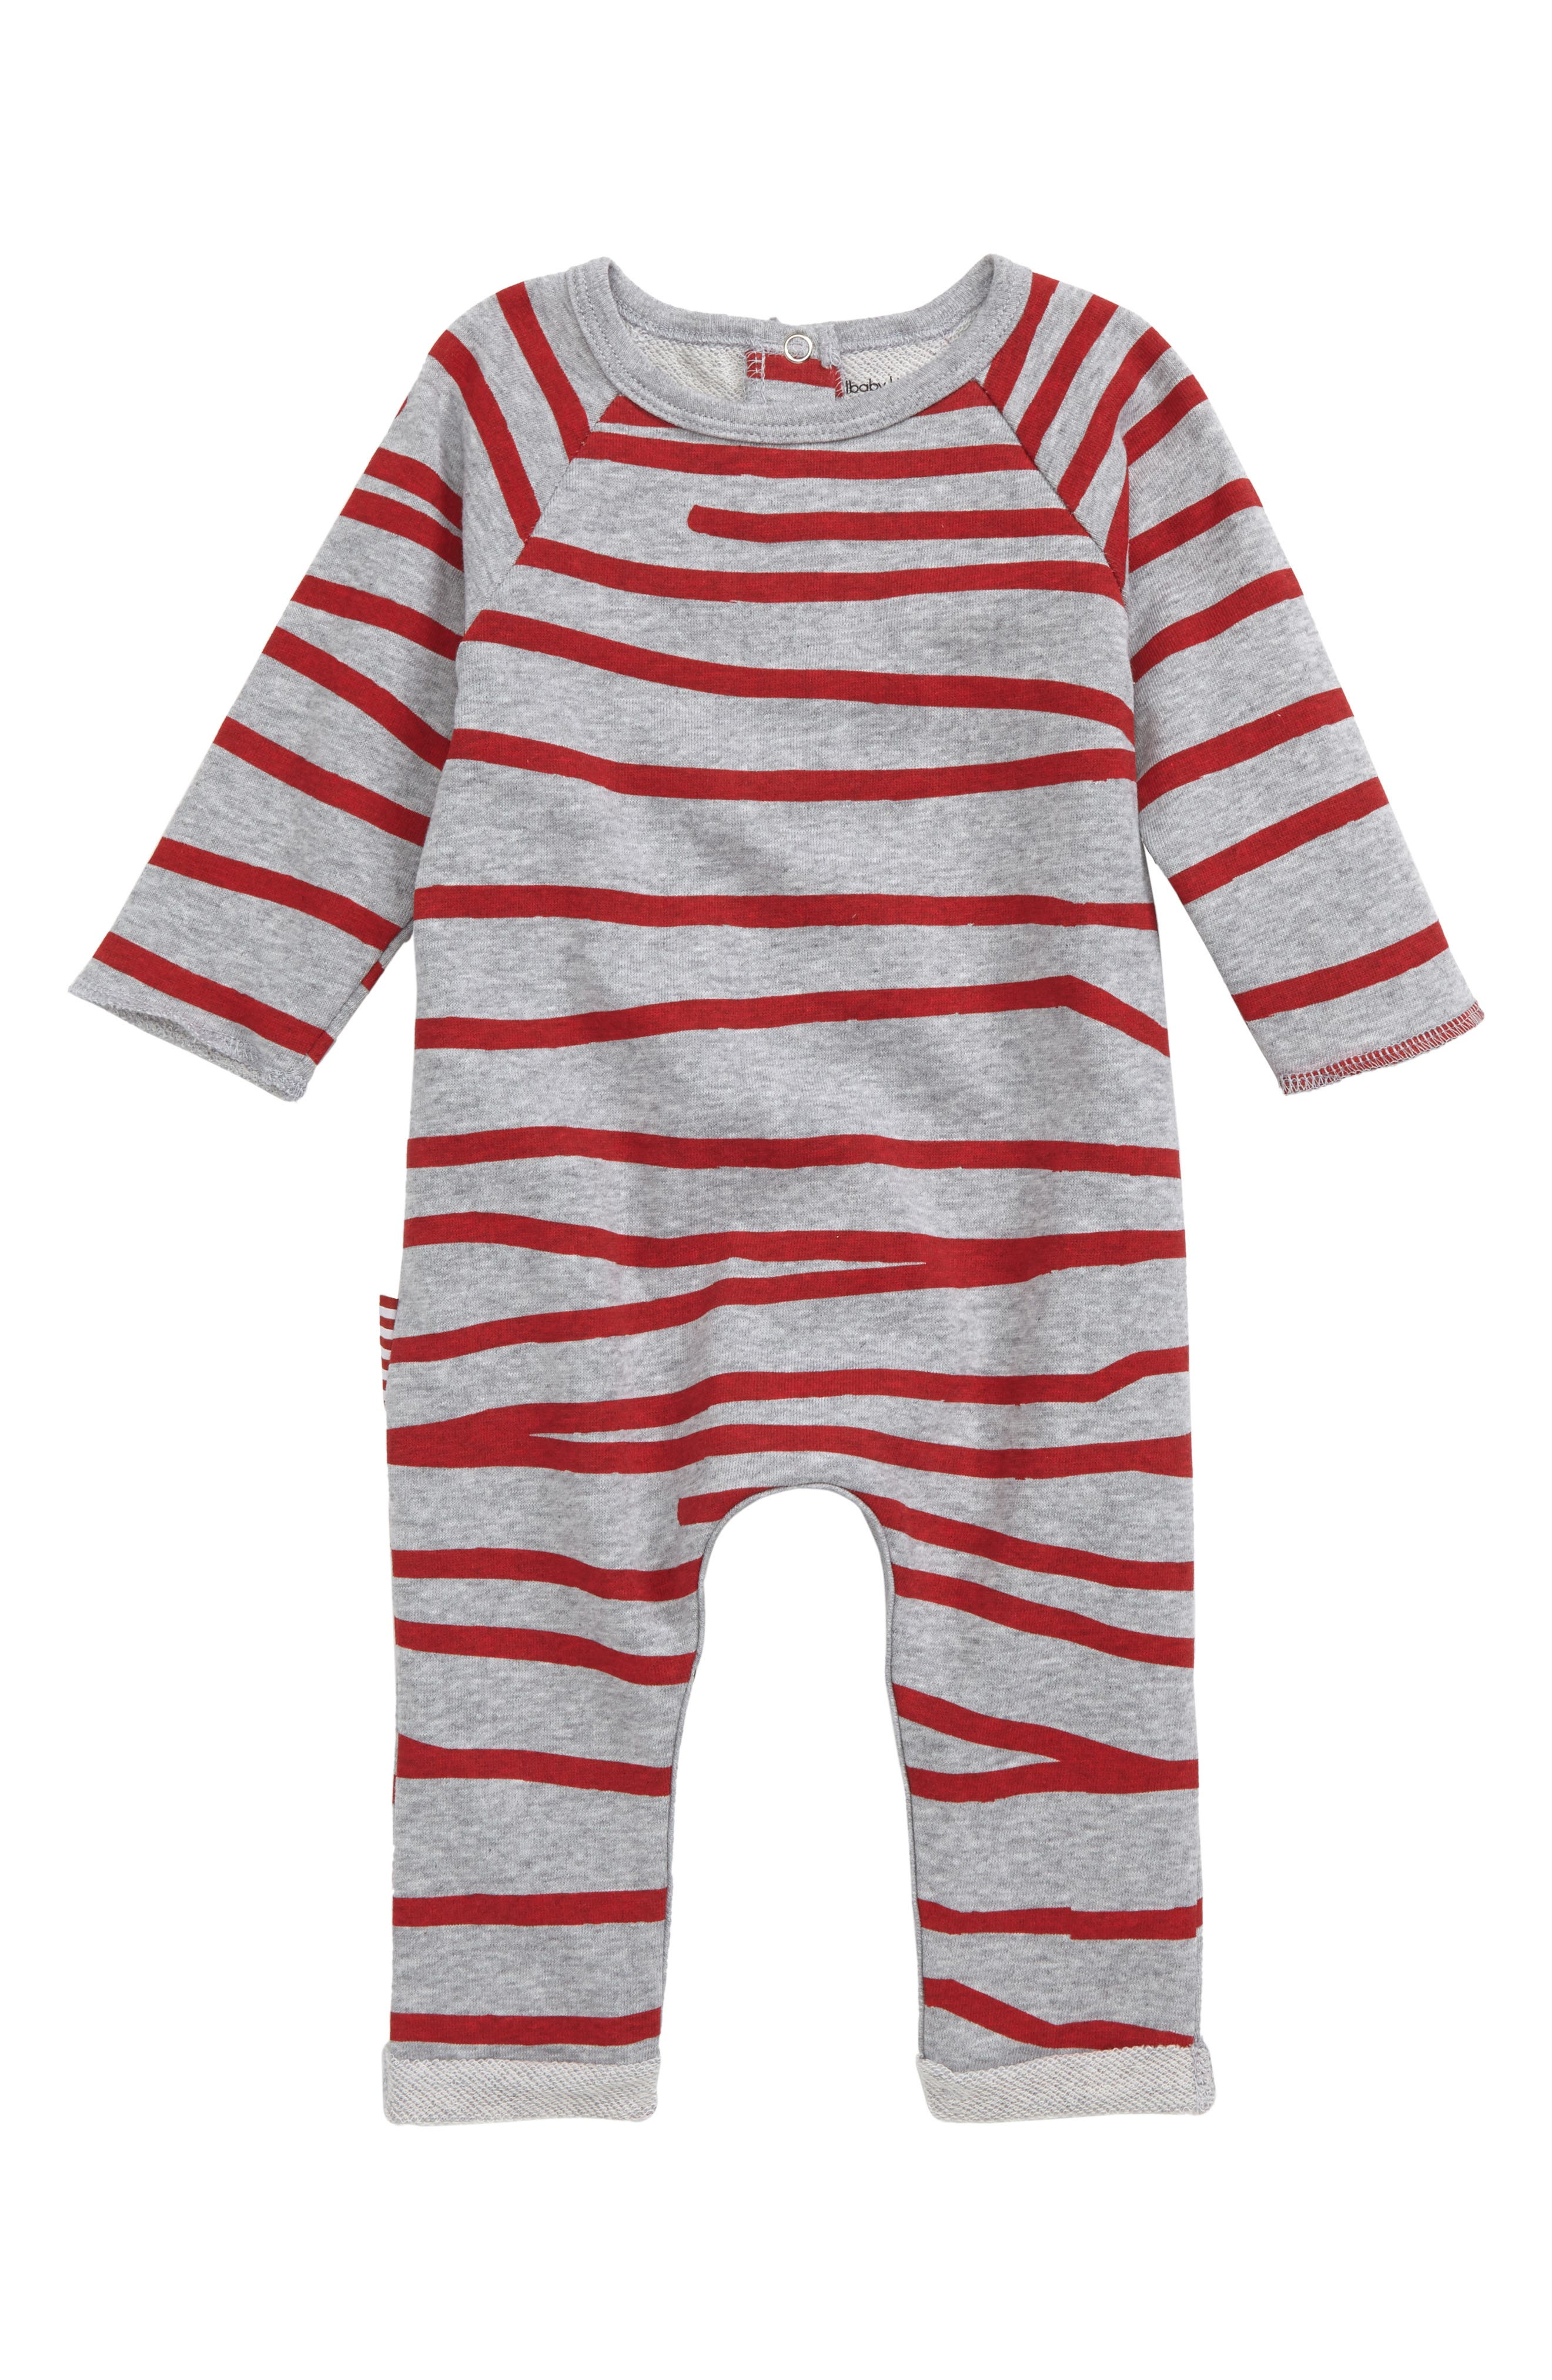 Stripe Romper,                         Main,                         color, Grey Marle/ Red